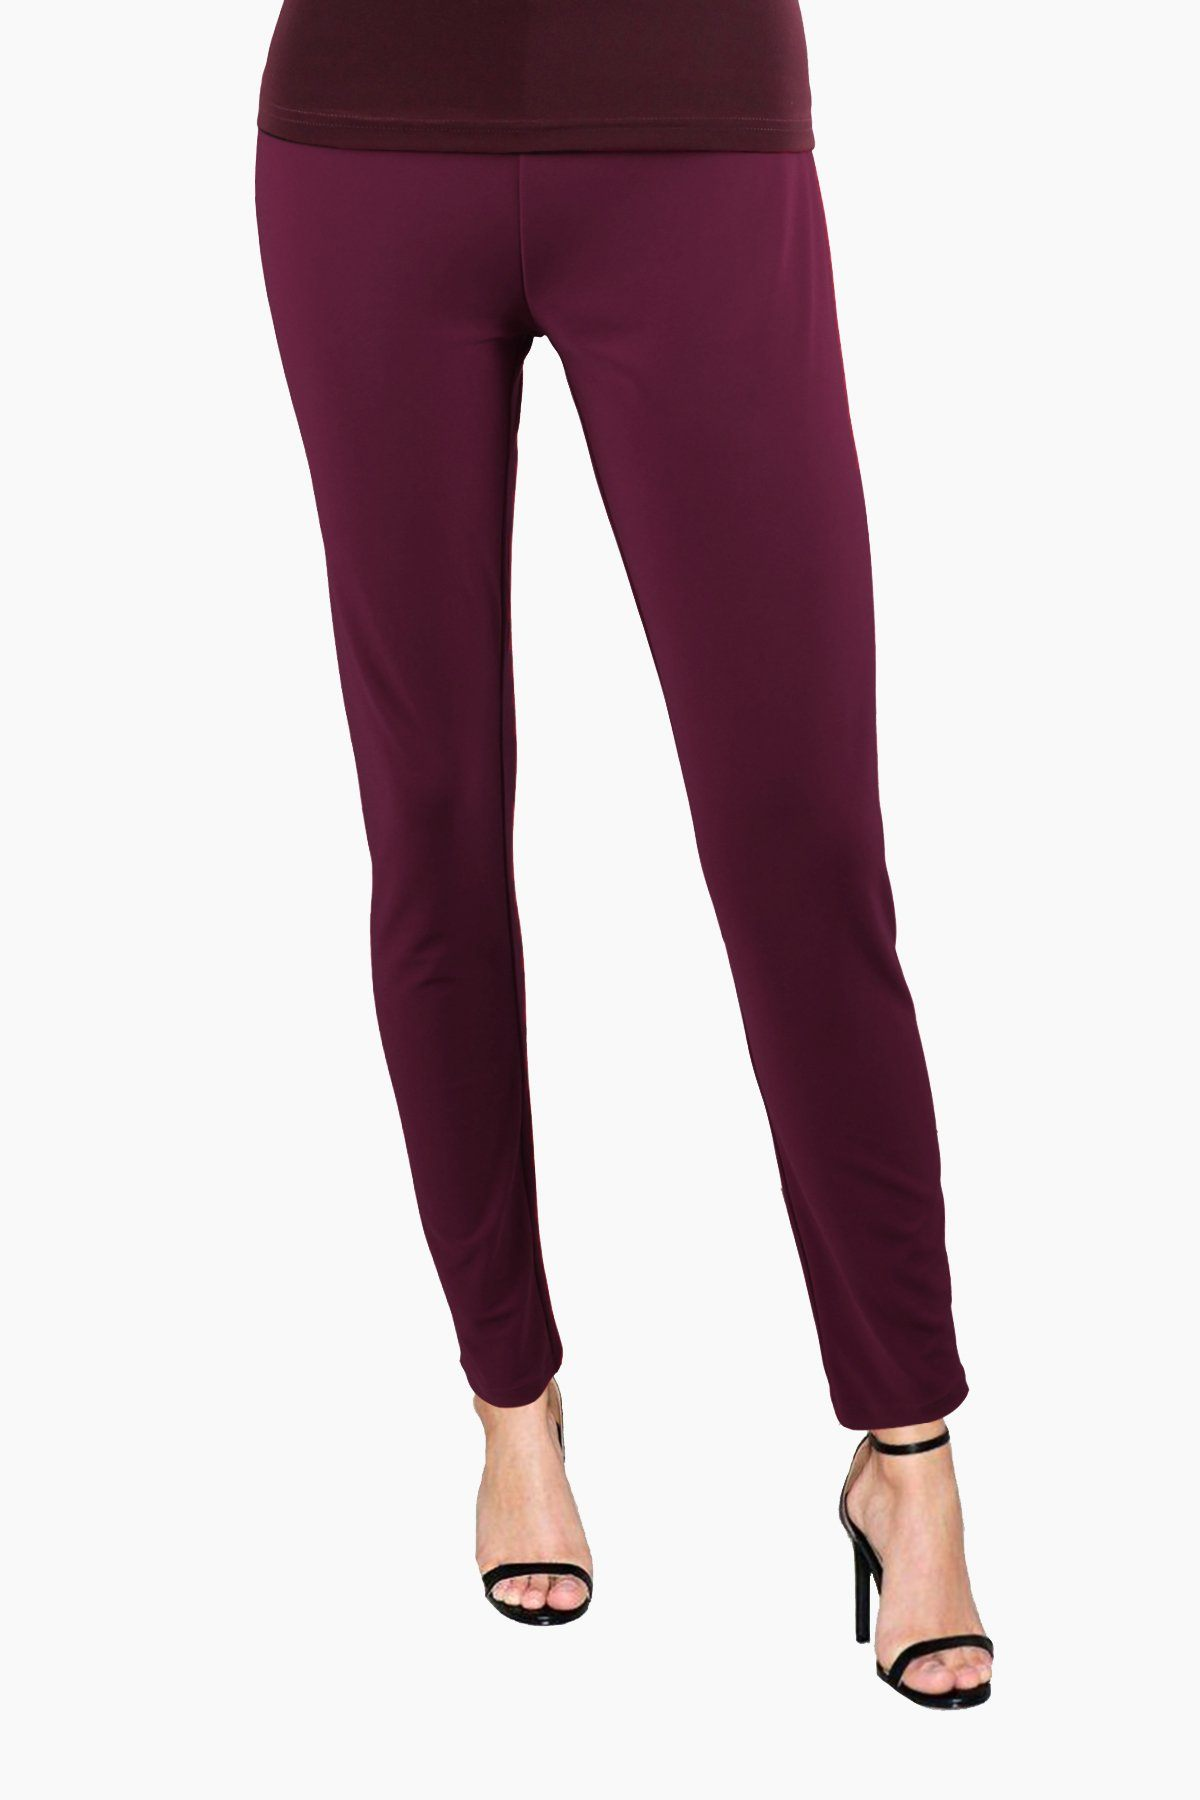 Women's Wine Slim Pants Rosarini